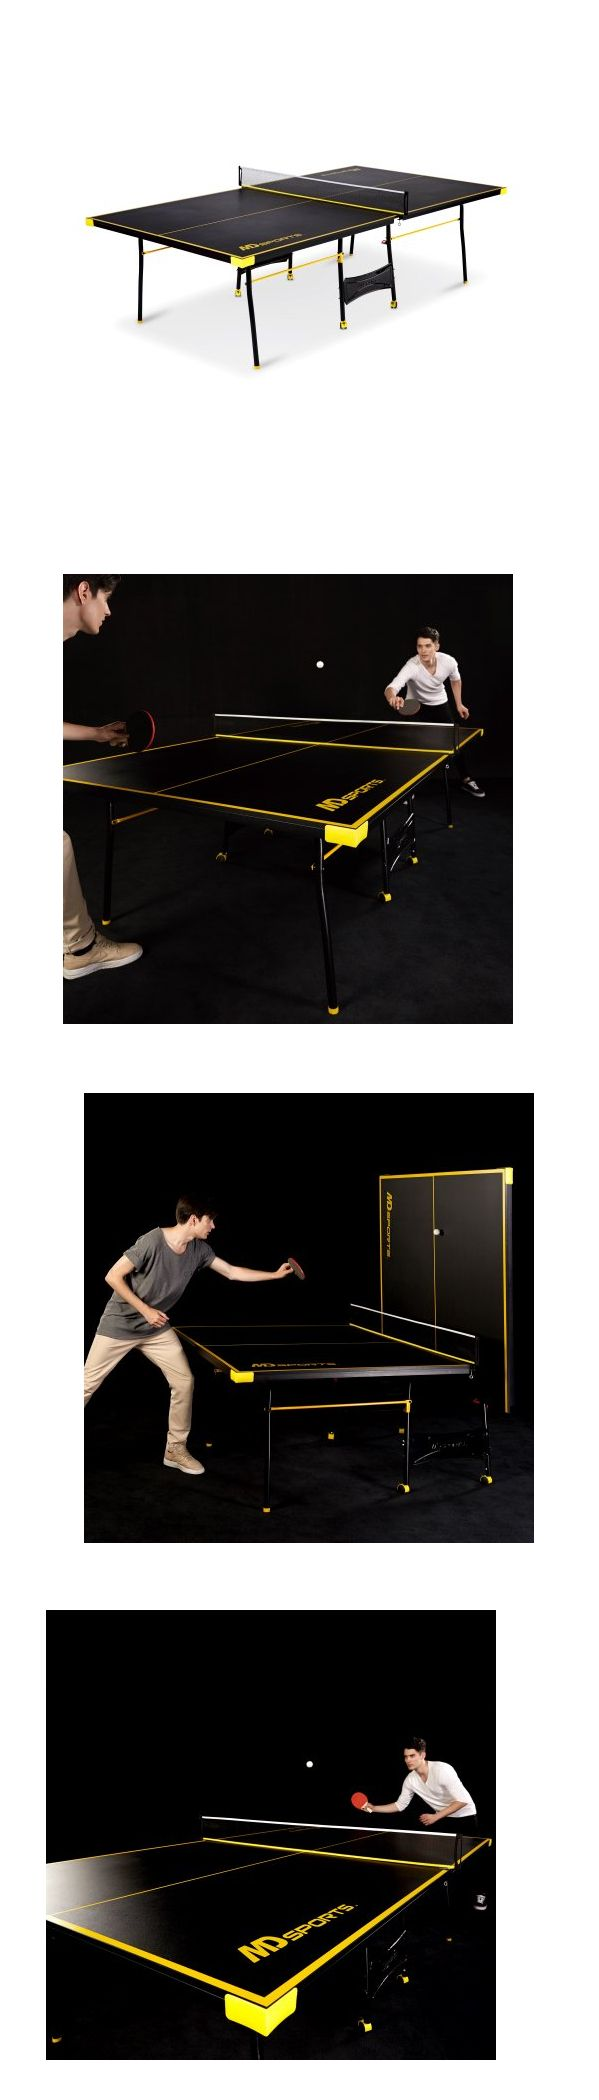 Tables 97075: Ping Pong Table Tennis Folding Tournament Size Game Set Indoor Outdoor Sport -> BUY IT NOW ONLY: $111.56 on eBay!